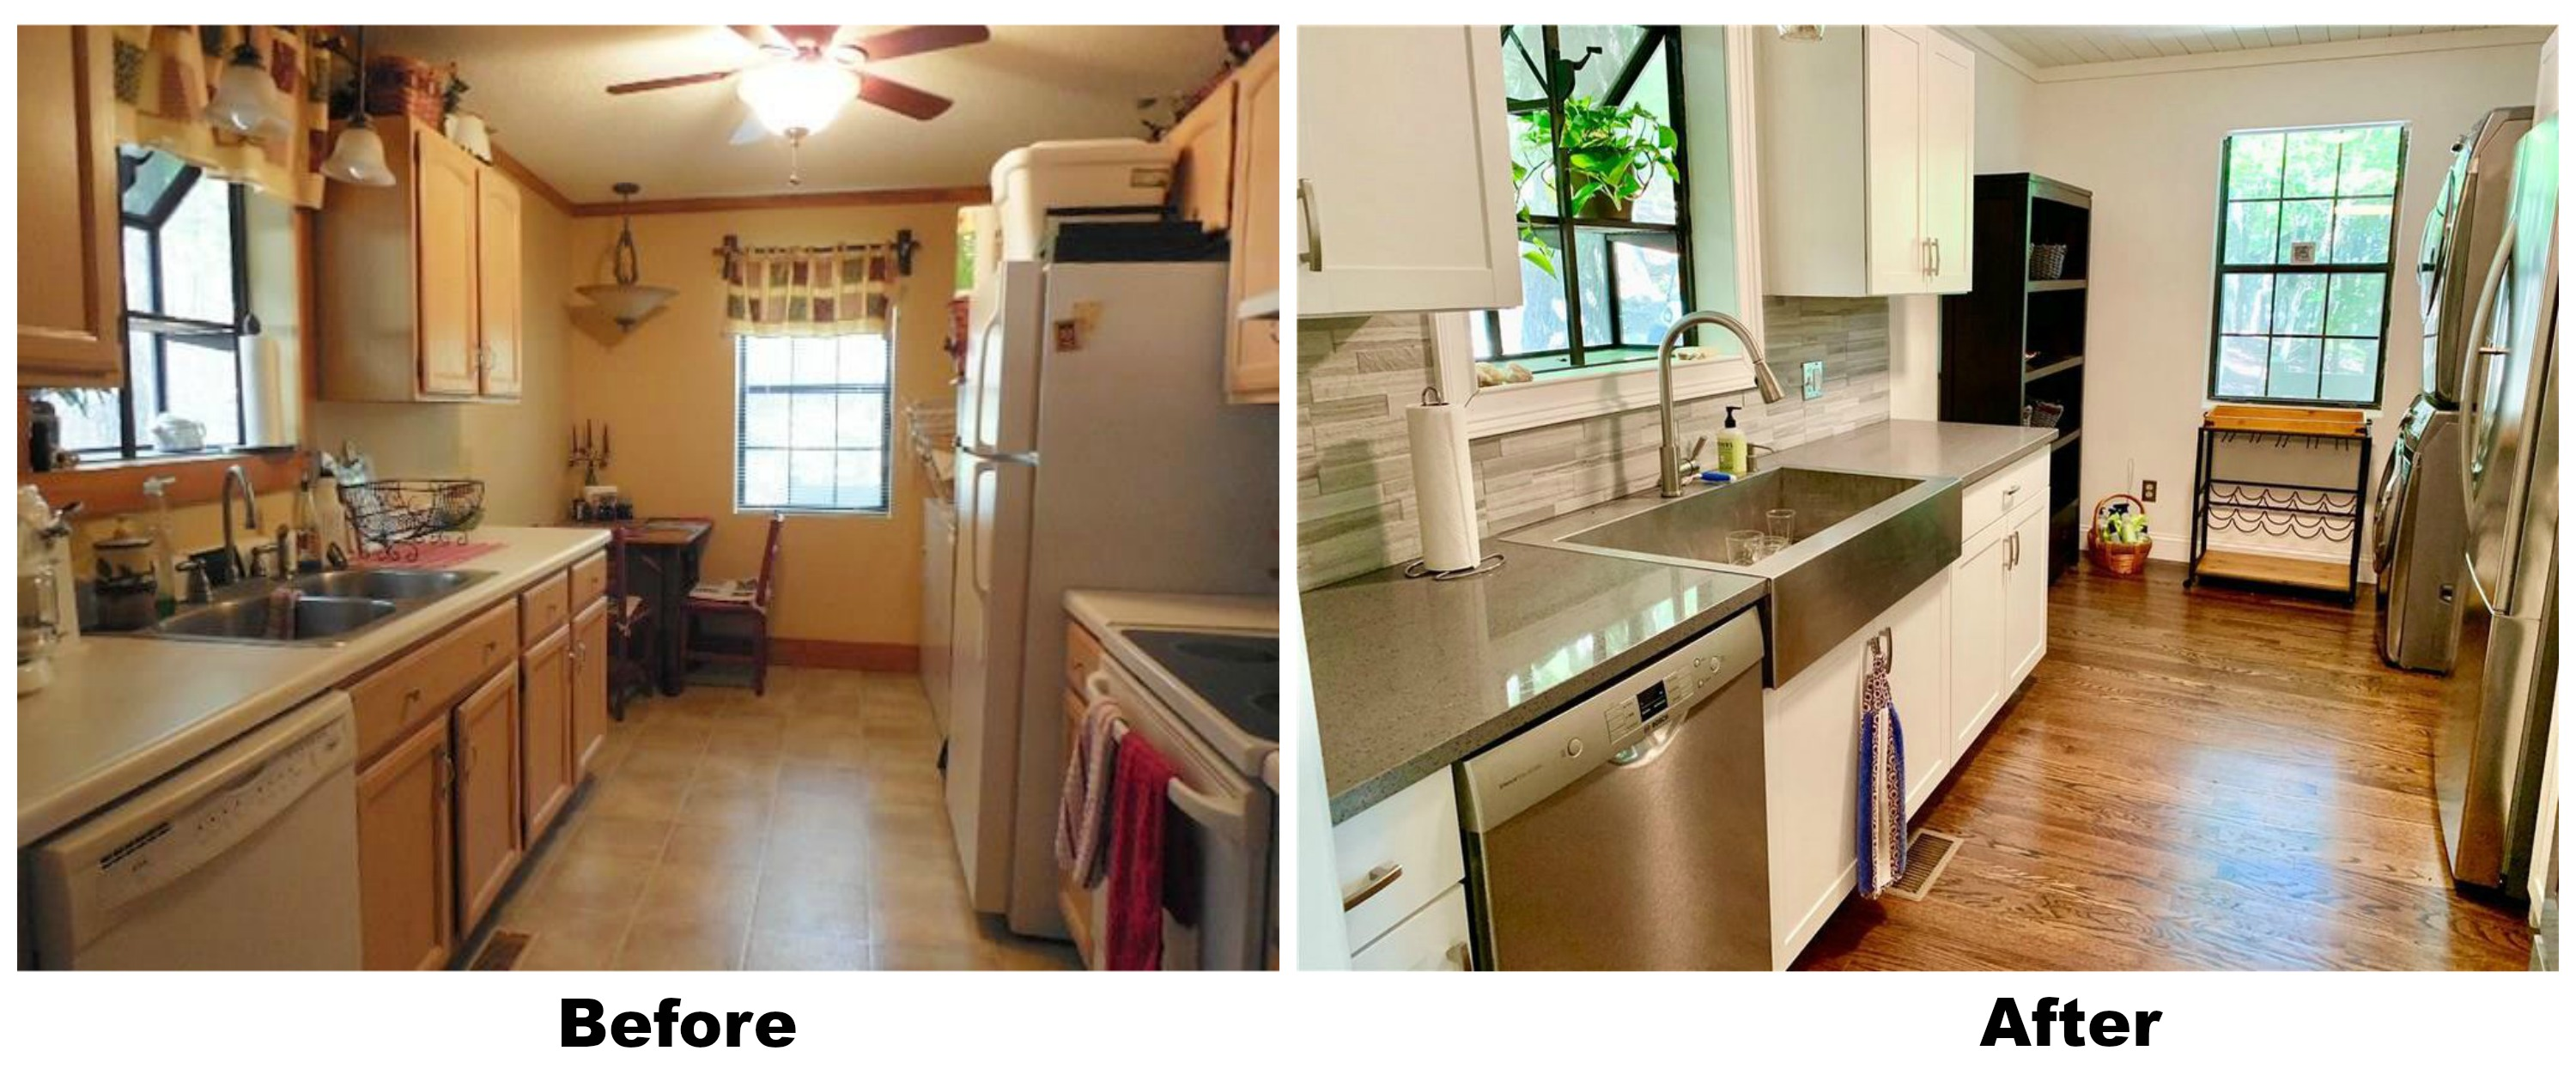 184 Panorama Pt in Bent Tree - Before and After Kitchen Update